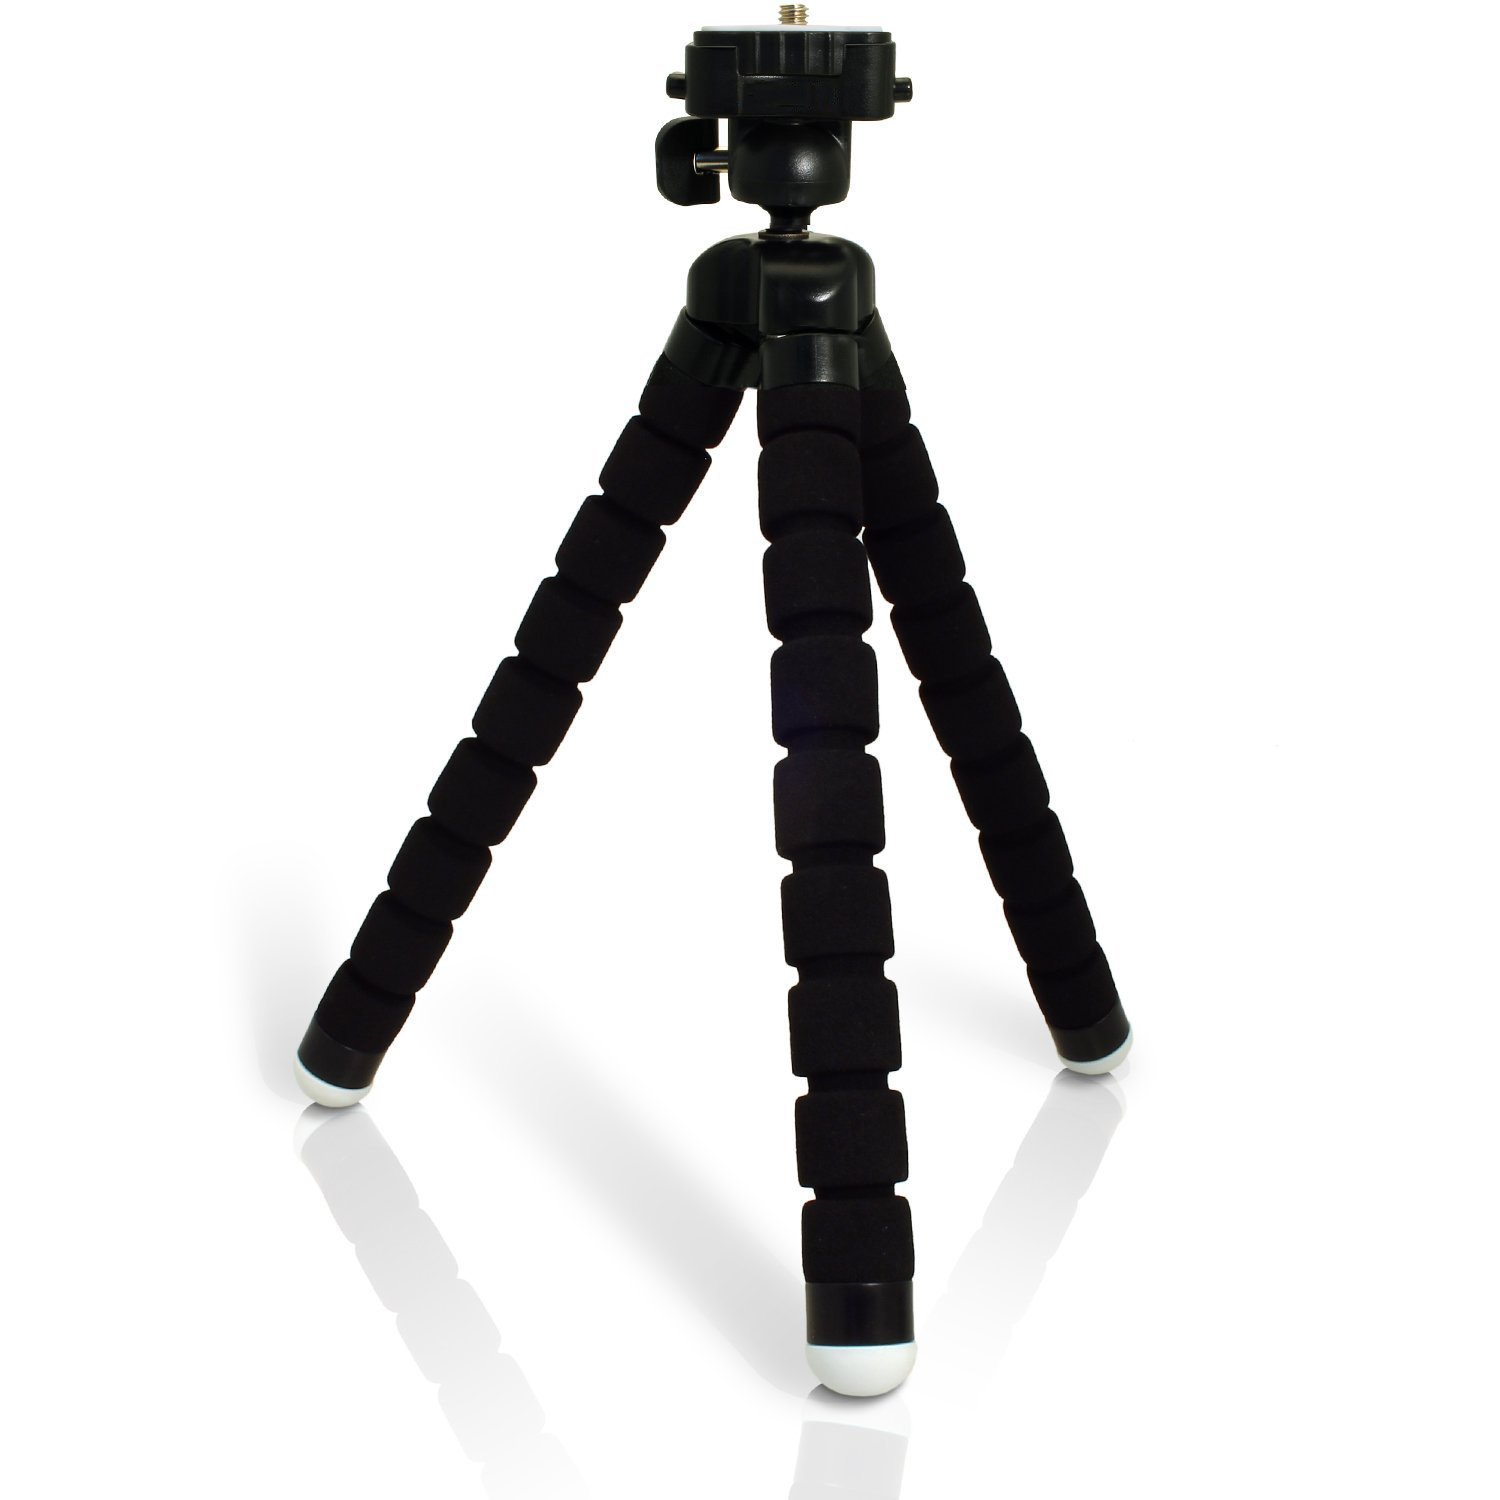 Phot-R 27cm Small Universal Flexible Tabletop Tripod for Digital Compact Cameras DSLR SLR CSC P20080